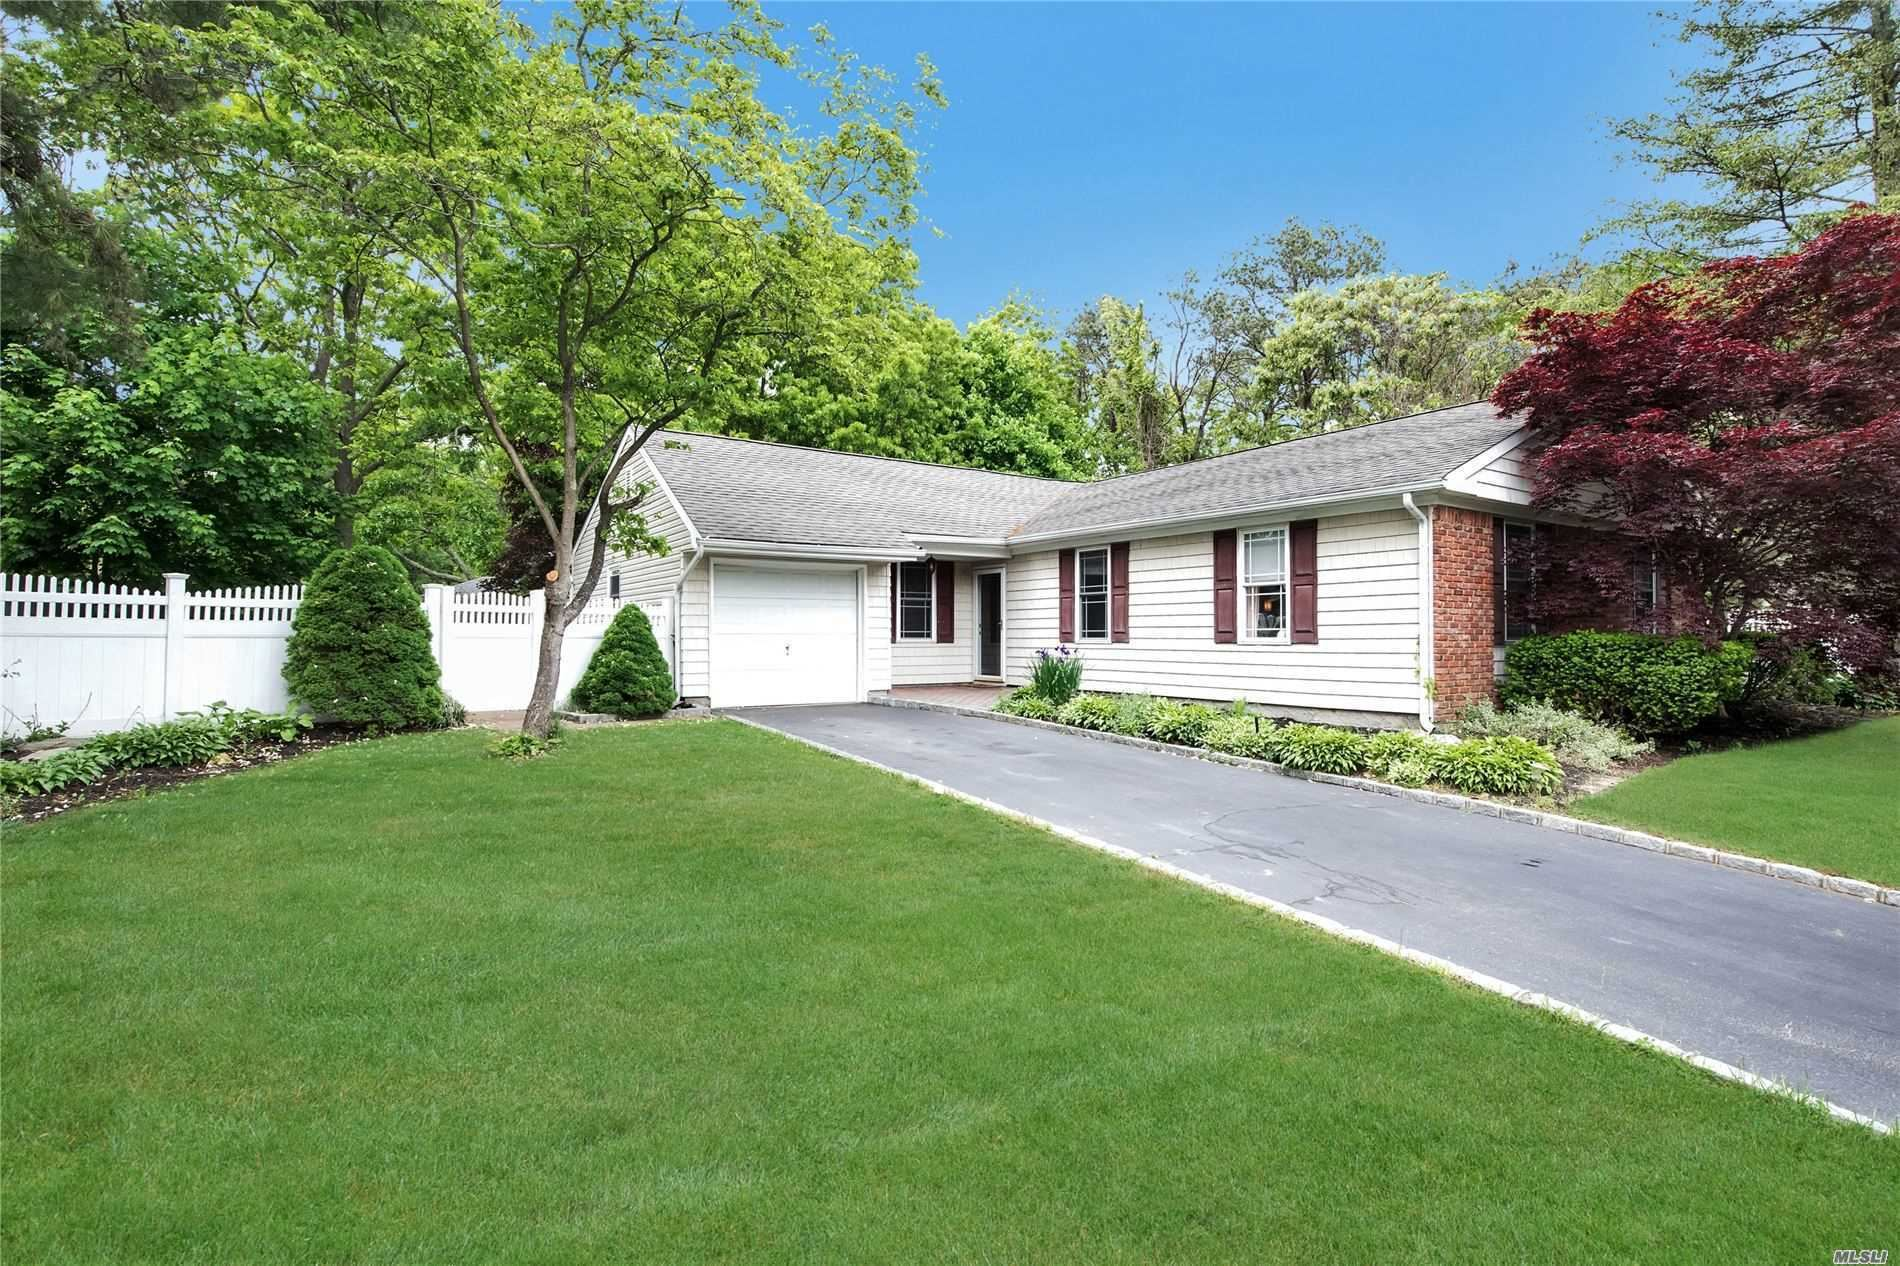 151 N Summit Ave, Patchogue, NY 11772 - MLS#: 3218285